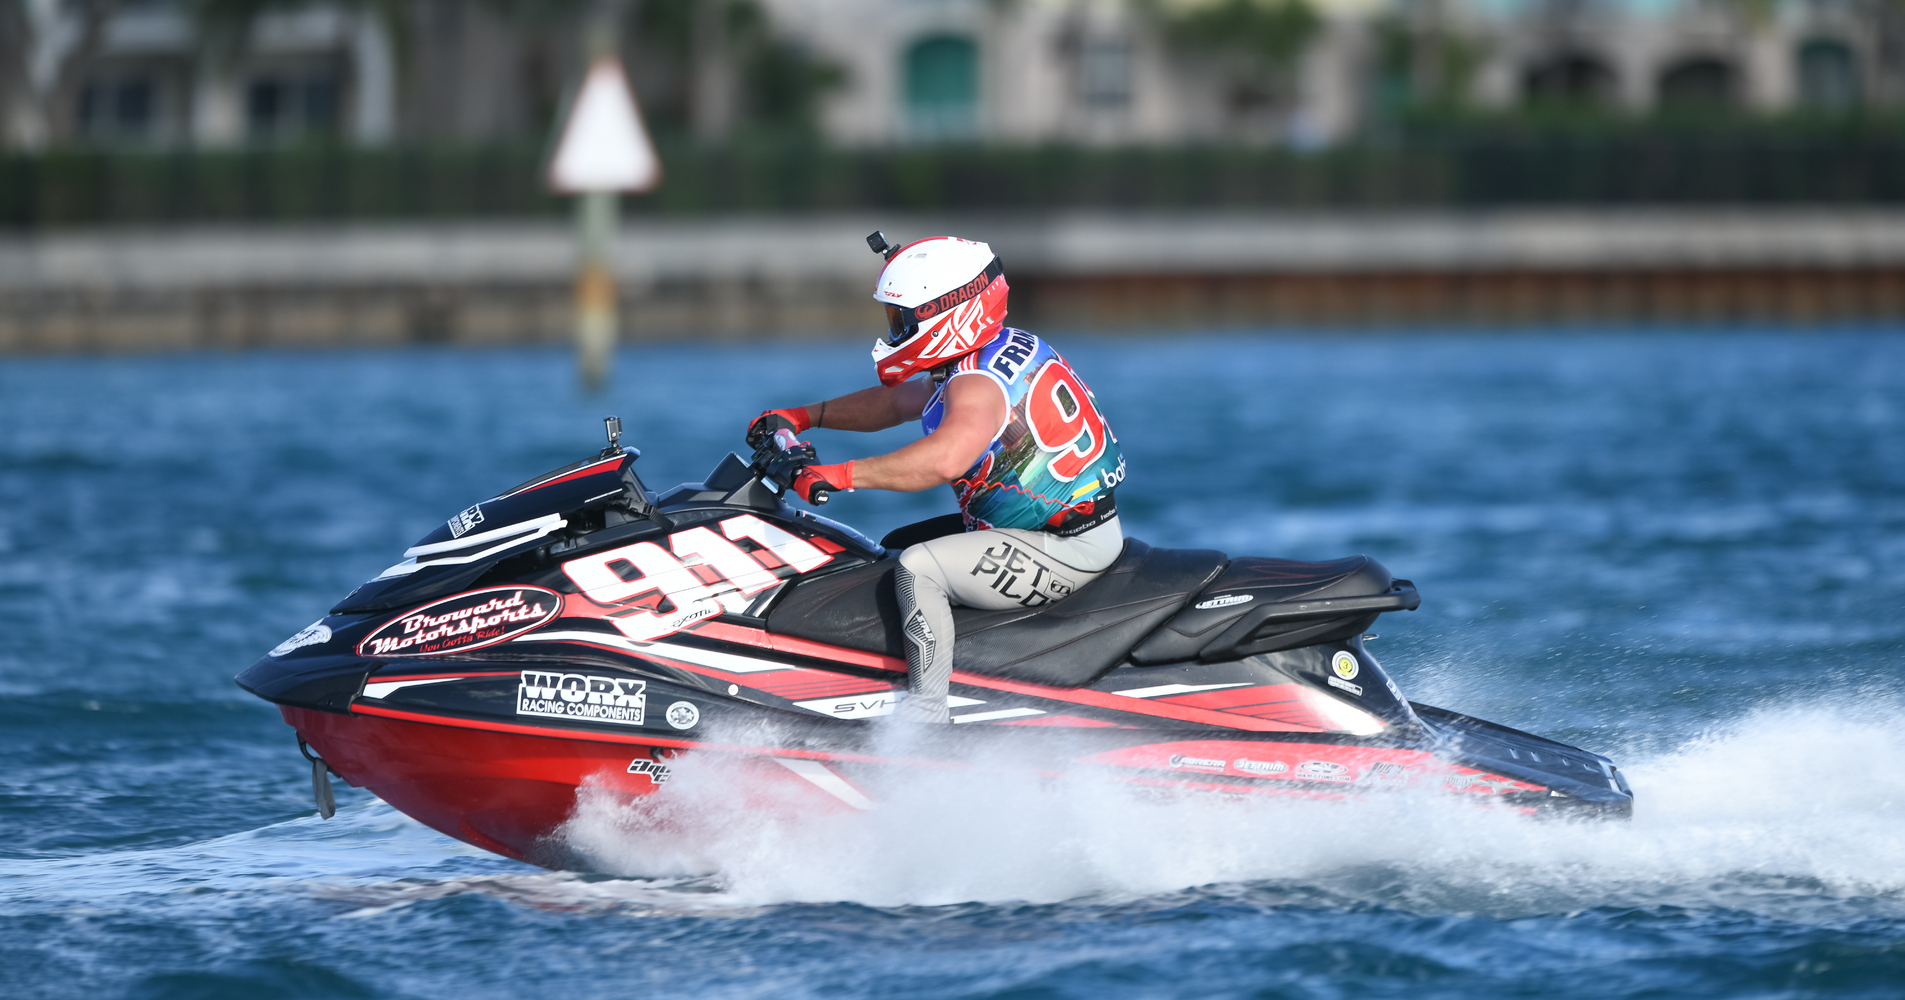 Broward Motorsport rider Eric Francis on board on his Yamaha GP1800